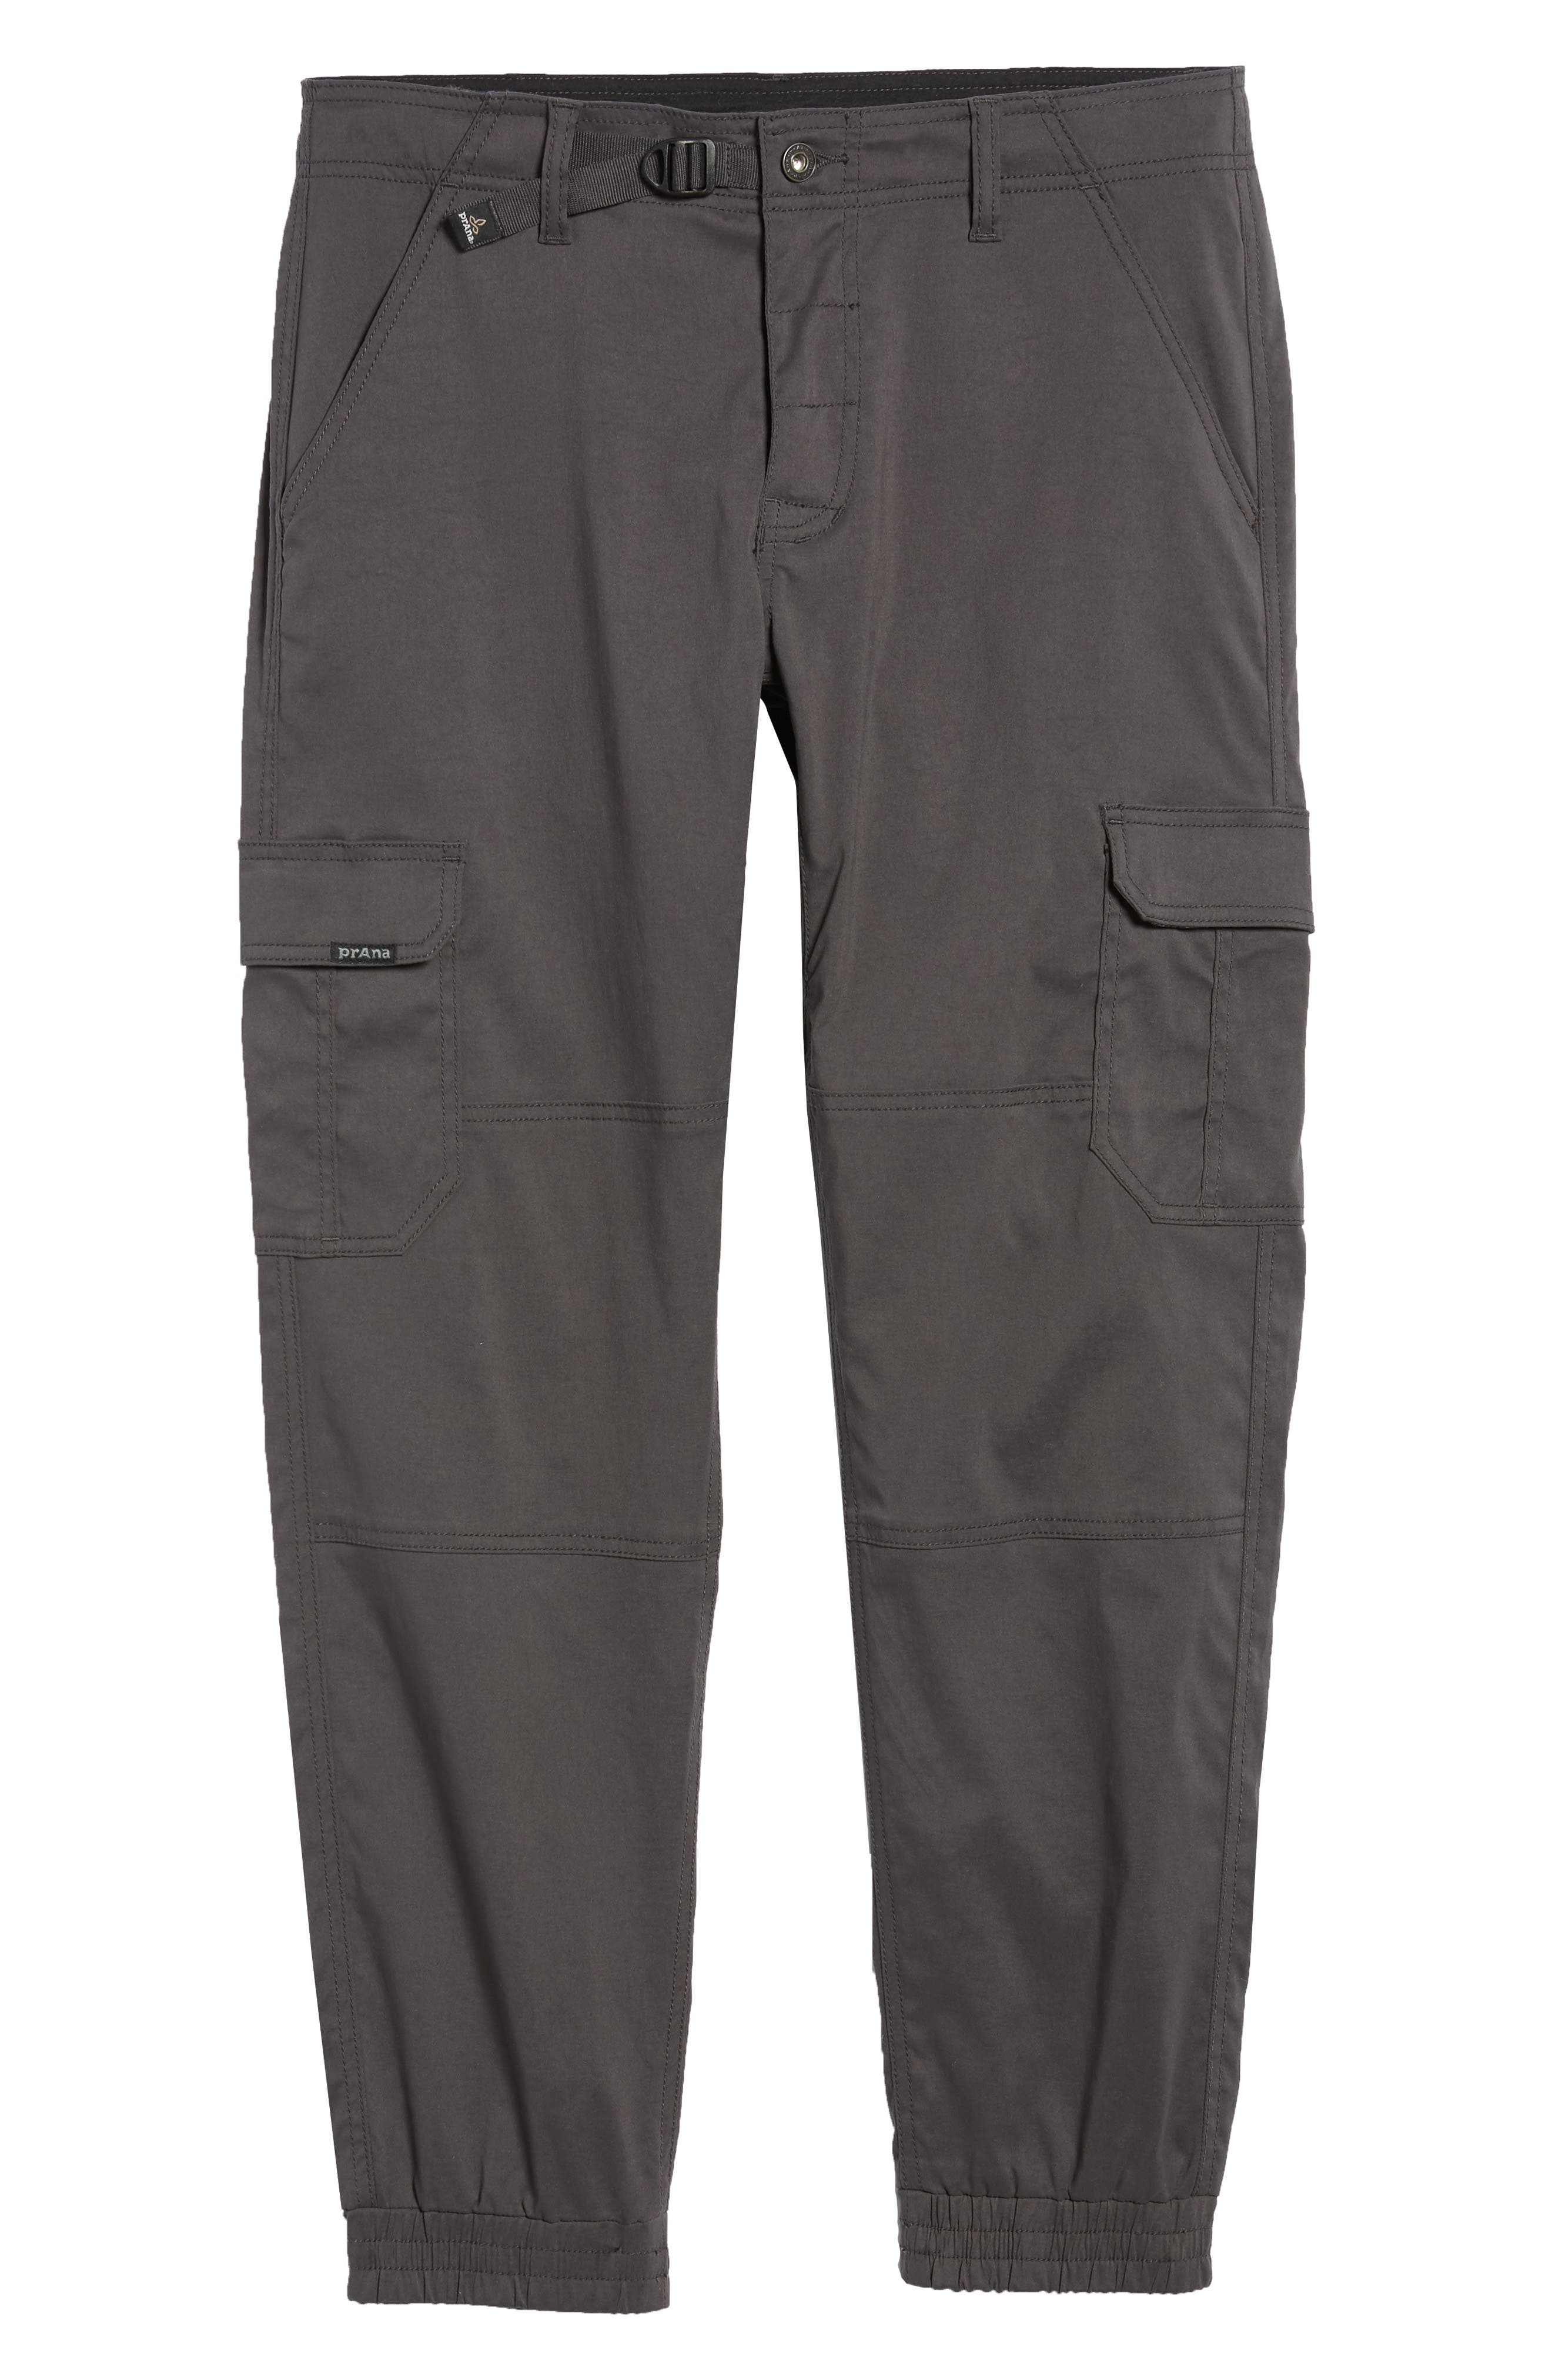 Zion Water Repellent Stretch Jogger Pants,                             Alternate thumbnail 6, color,                             Charcoal